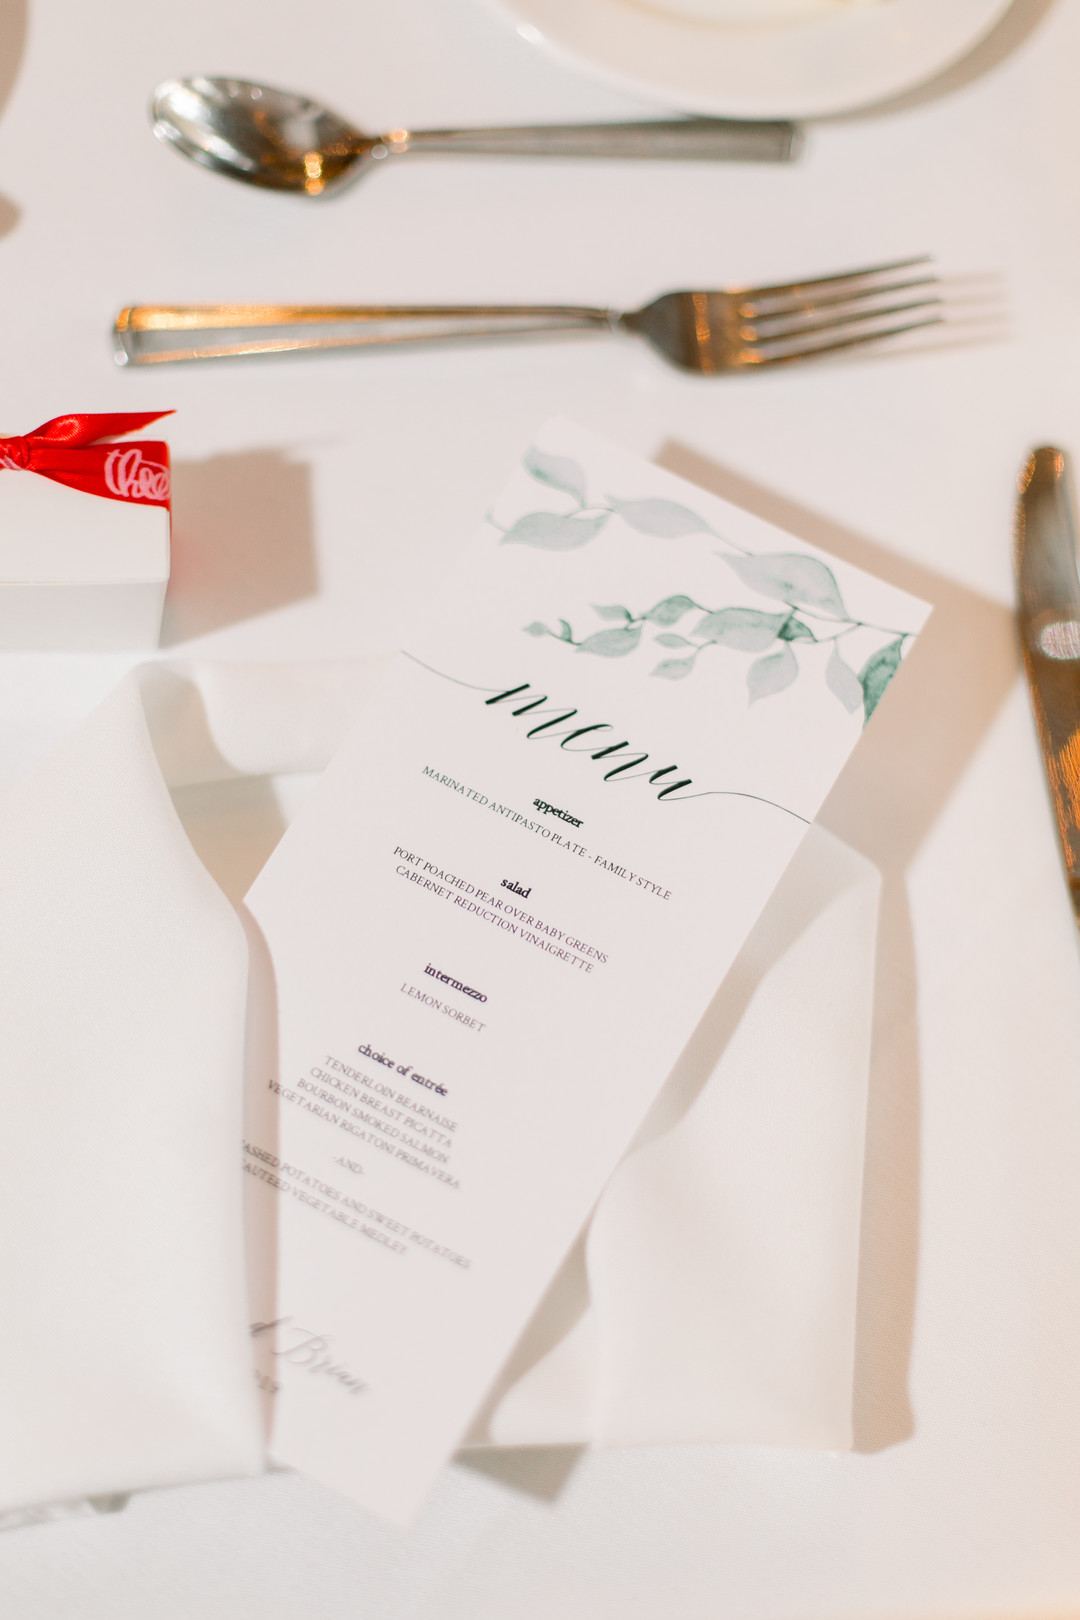 Wedding menu stationery: Spring wedding inspiration captured by Nicole Morisco Photography. Find more spring wedding ideas at CHItheeWED.com!